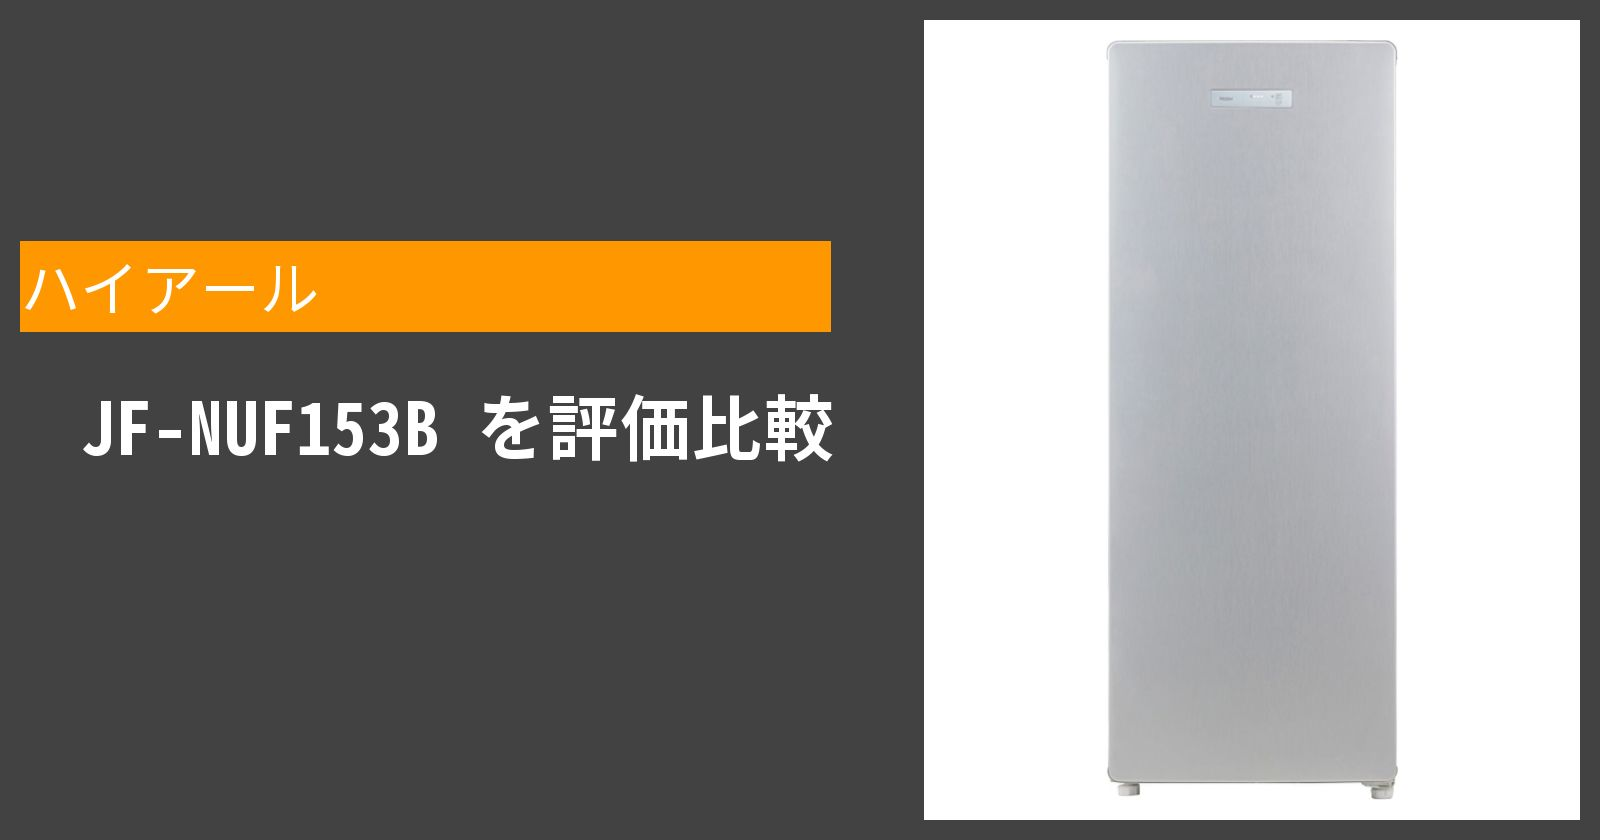 JF-NUF153Bを徹底評価